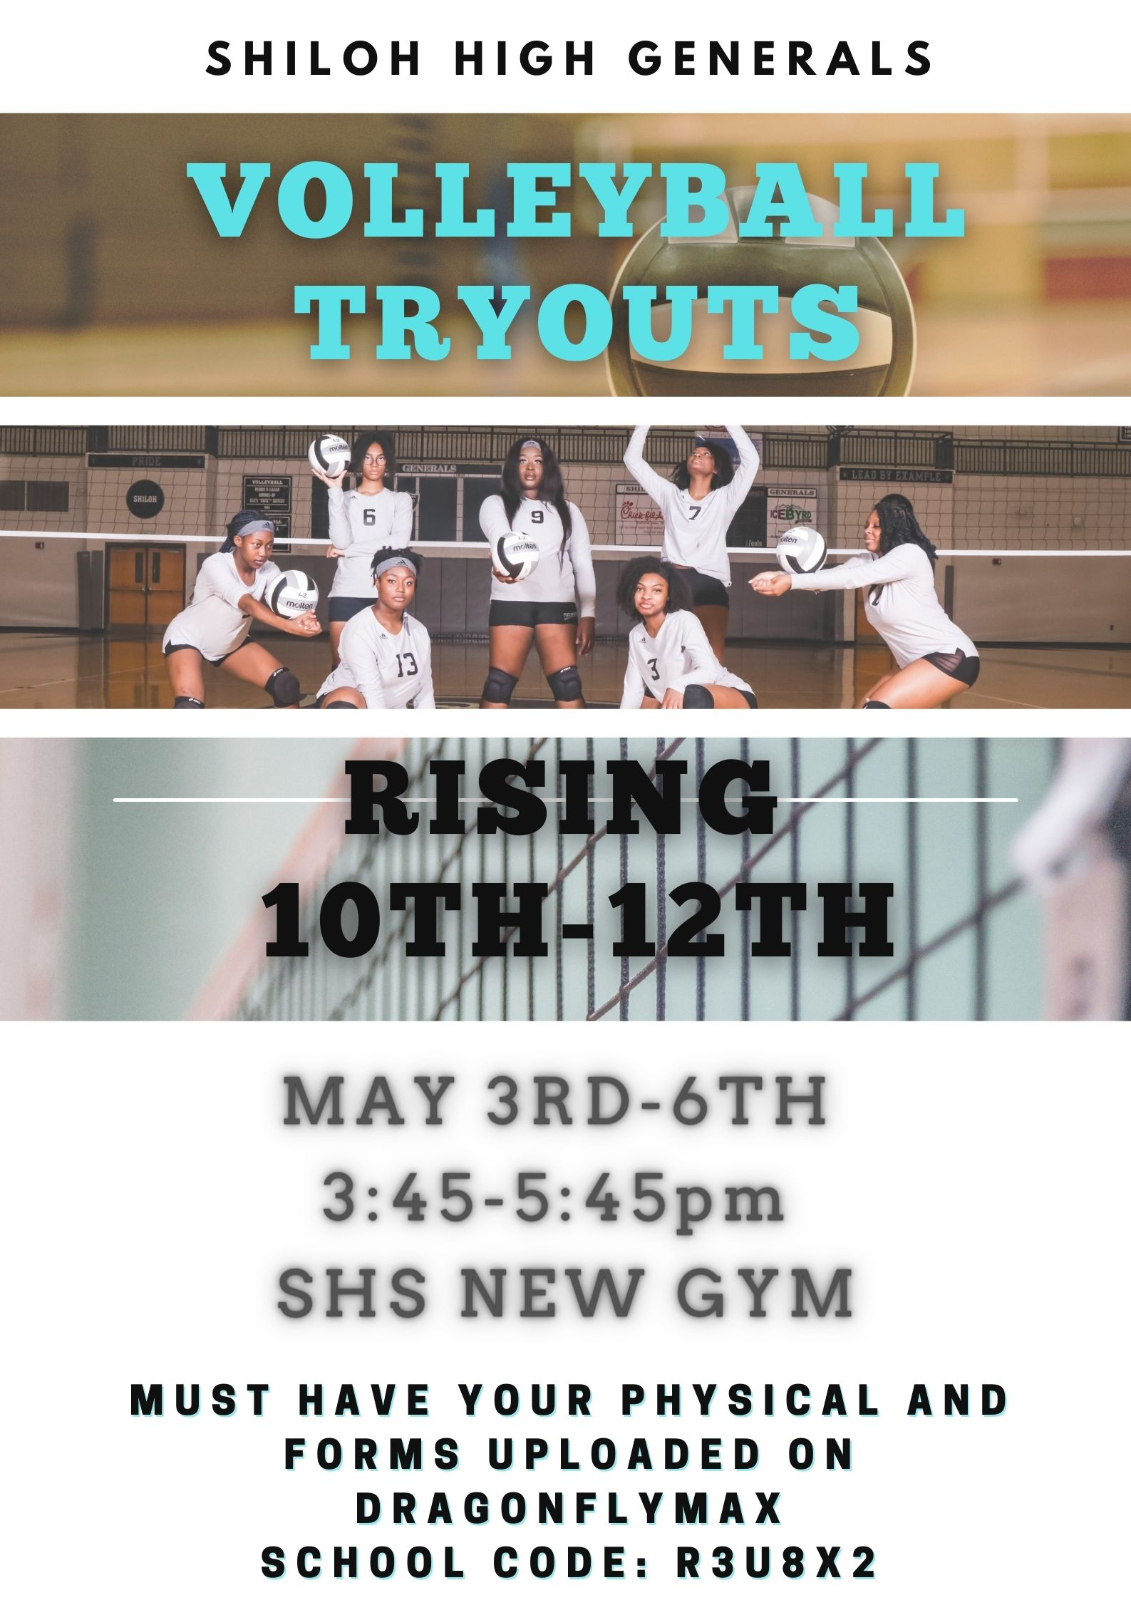 Volleyball Tryout Information For Rising 10th-12th Graders